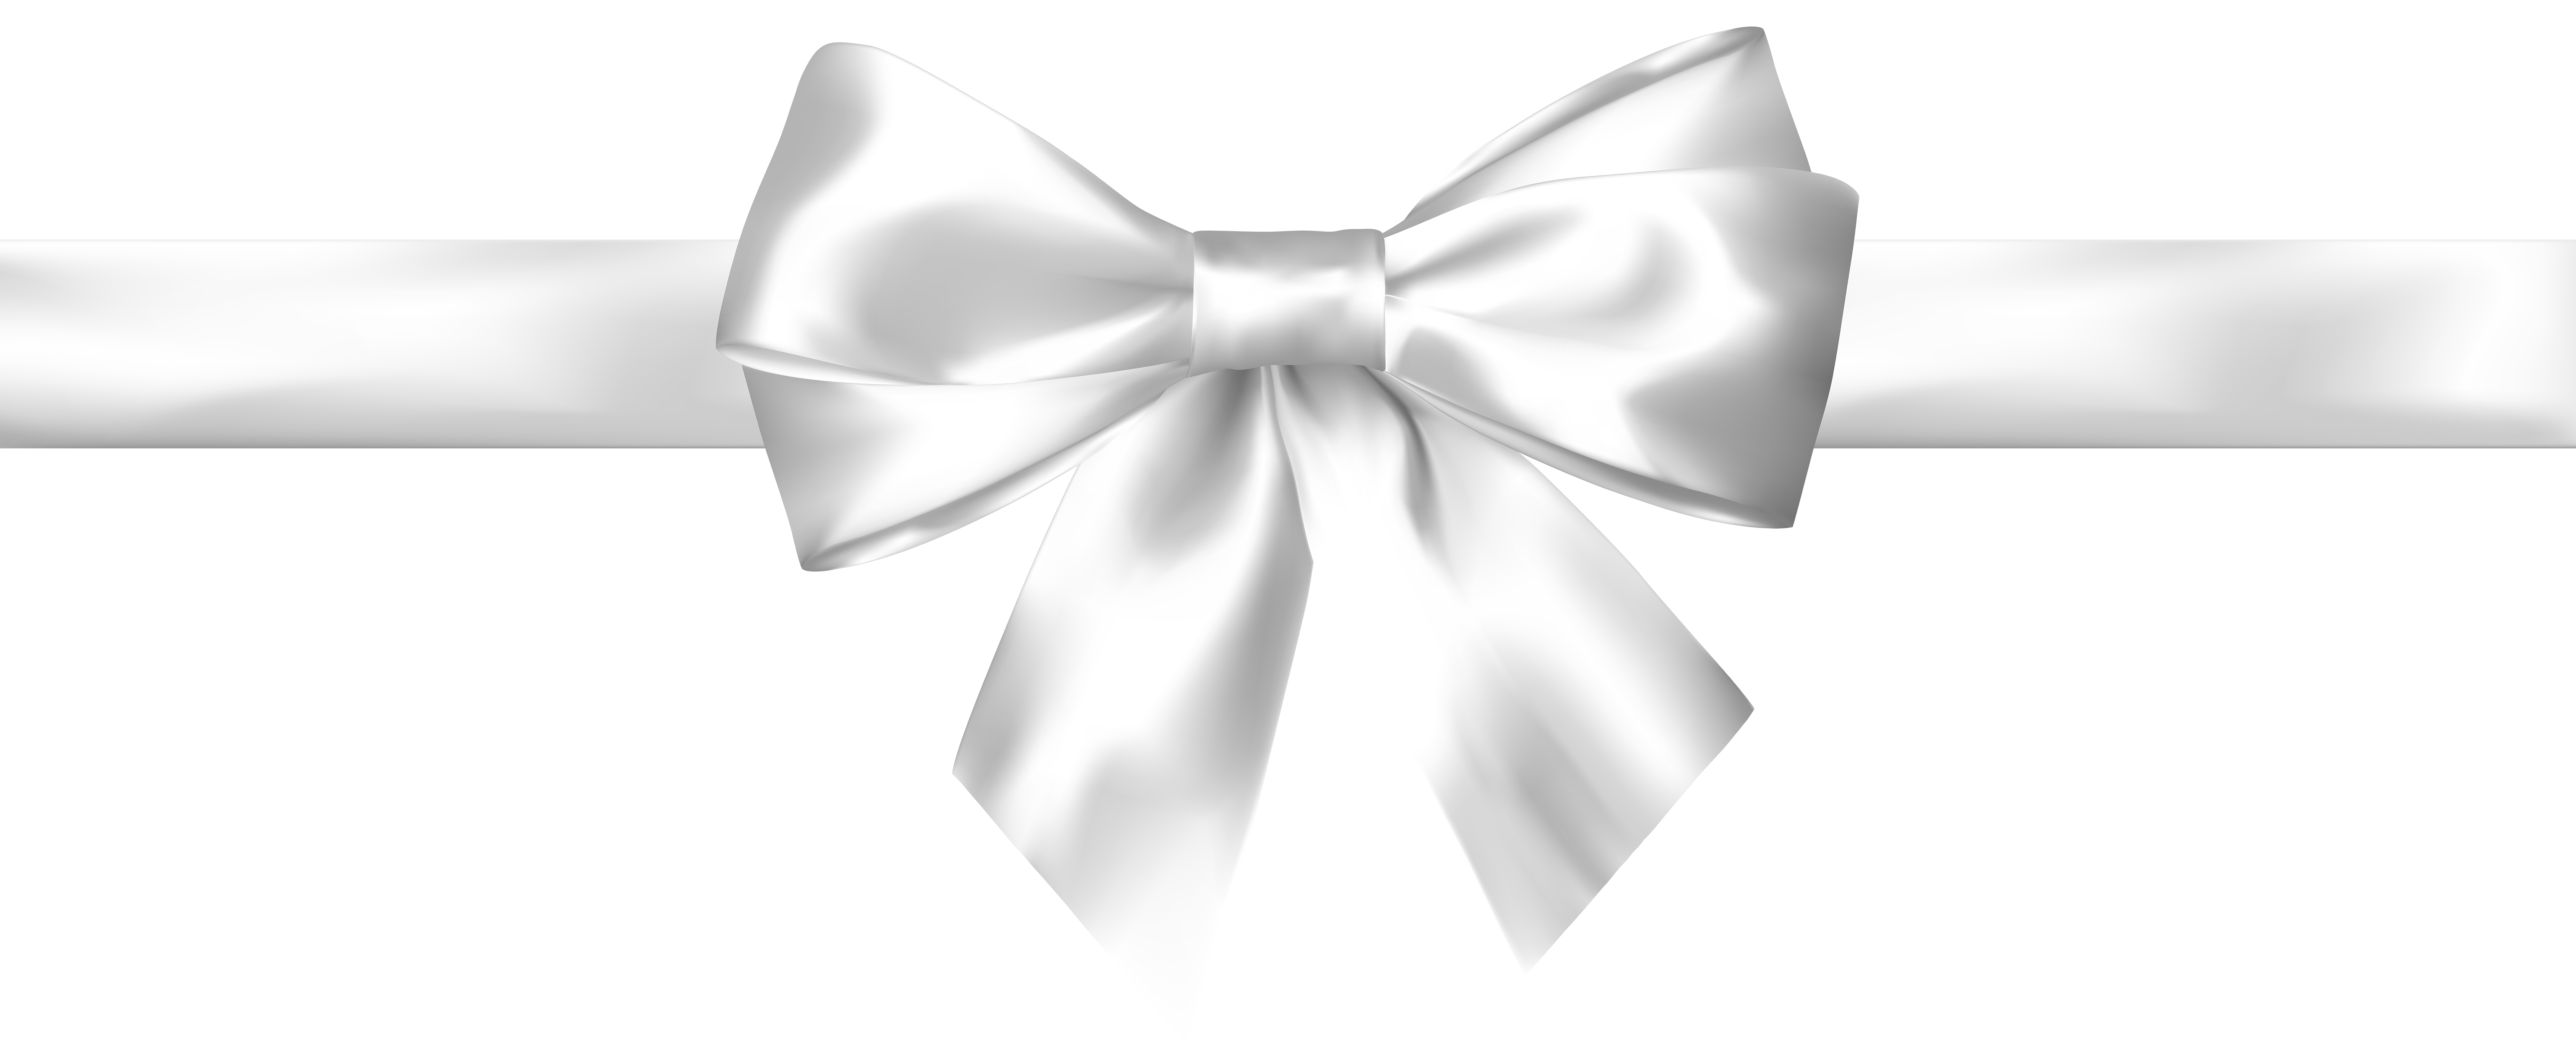 White bow transparent png. Silver clip black tie clip art royalty free download